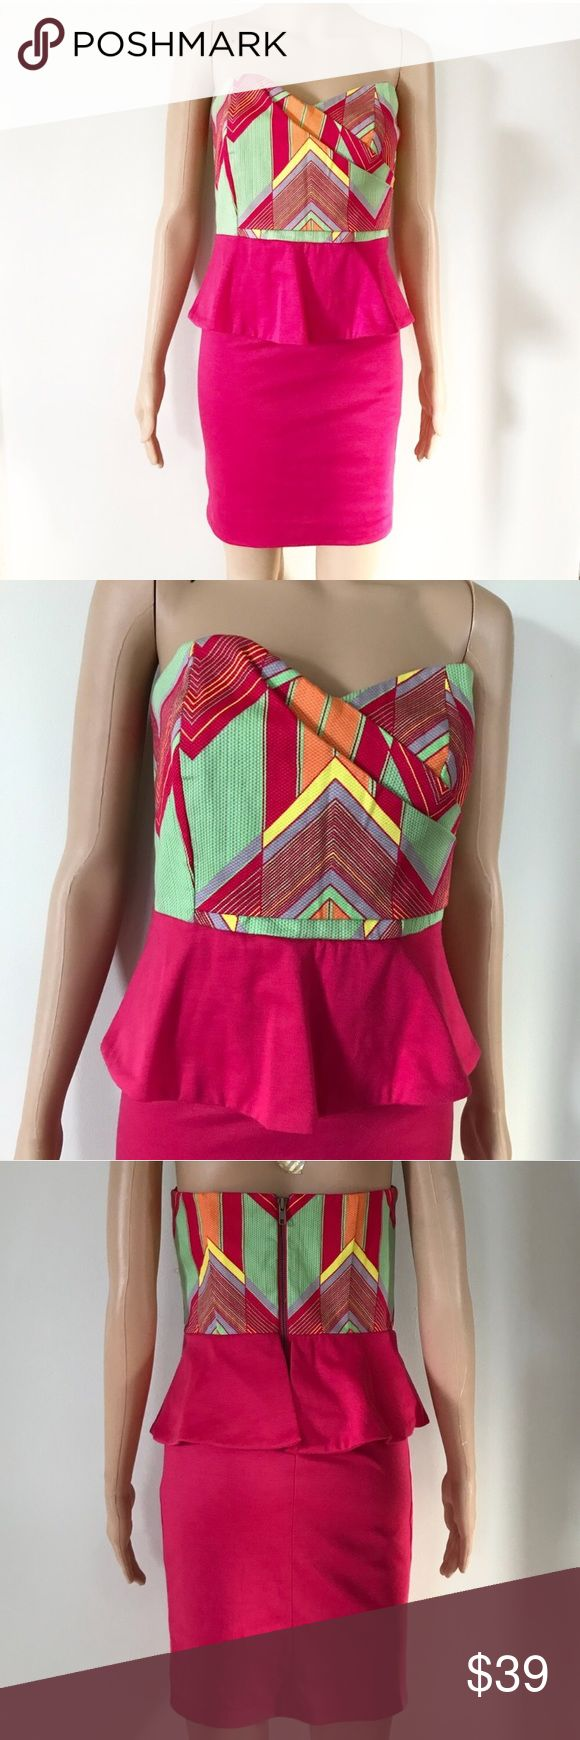 """Judith March Peplum Strapless Zig Zag Dress Judith March Coastal Zig Zag aztec strapless peplum dress. Super cute party dress! • Excellent condition, like new • Asymmetrical sweetheart neckline • Hot pink / fuchsia colors with lime green, orange, and yellow • Zip Up closure  • Cotton spandex blend, skirt has good stretch • Style 728D-1  • Approx. measurements when laid flat: 32"""" bust, 28"""" Waist, 25.5"""" length Judith March Dresses Mini"""